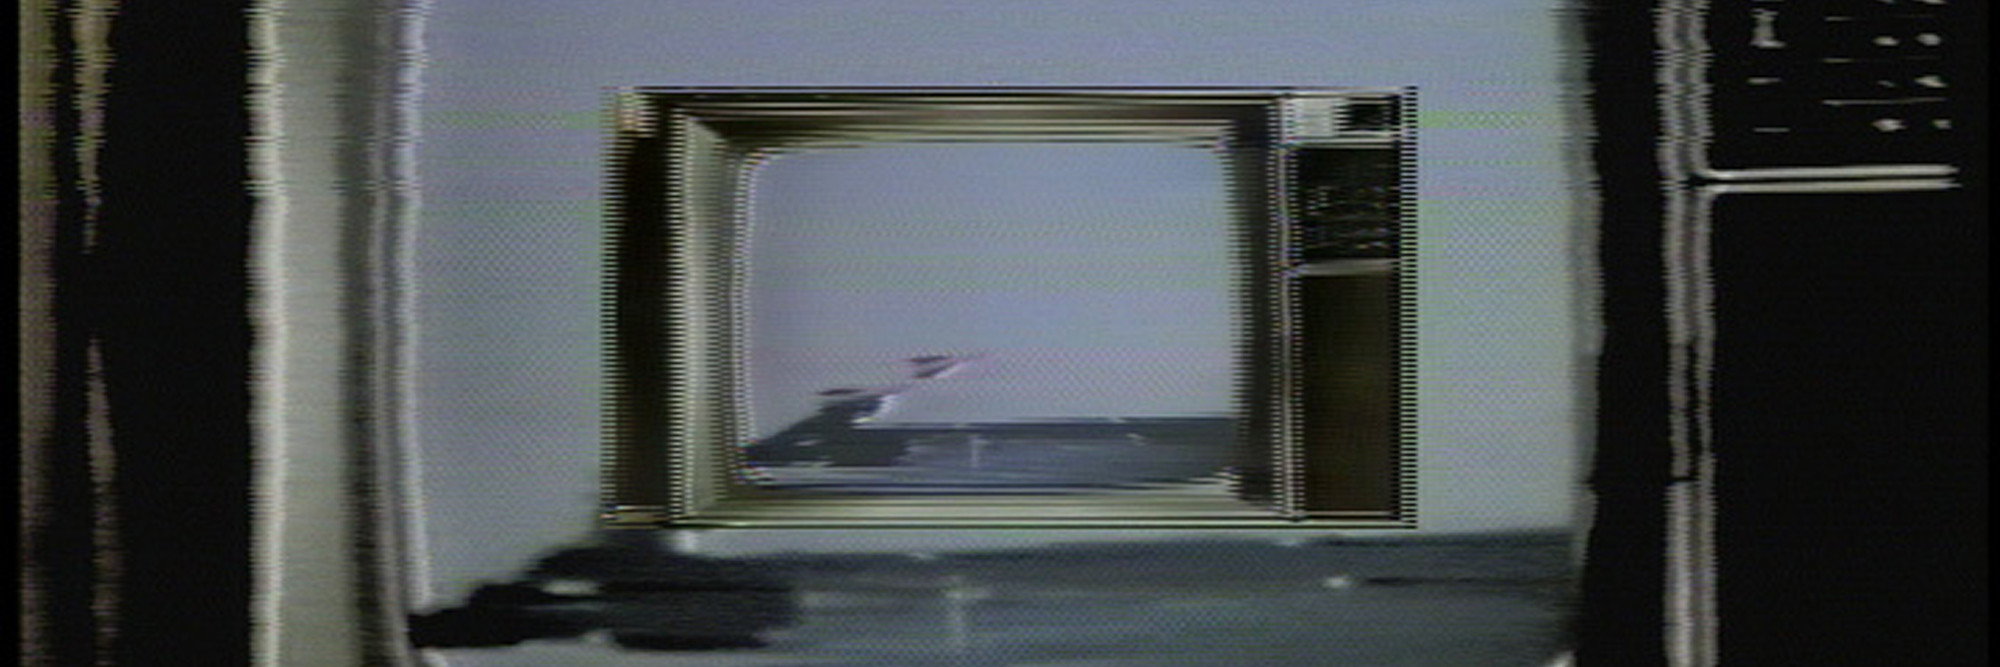 Gretchen Bender. Dumping Core. 1984. Four-channel video (color, sound; 13 min.) and 13 monitors, dimensions variable. The Modern Women's Fund. © 2019 Gretchen Bender. Courtesy the Estate of Gretchen Bender